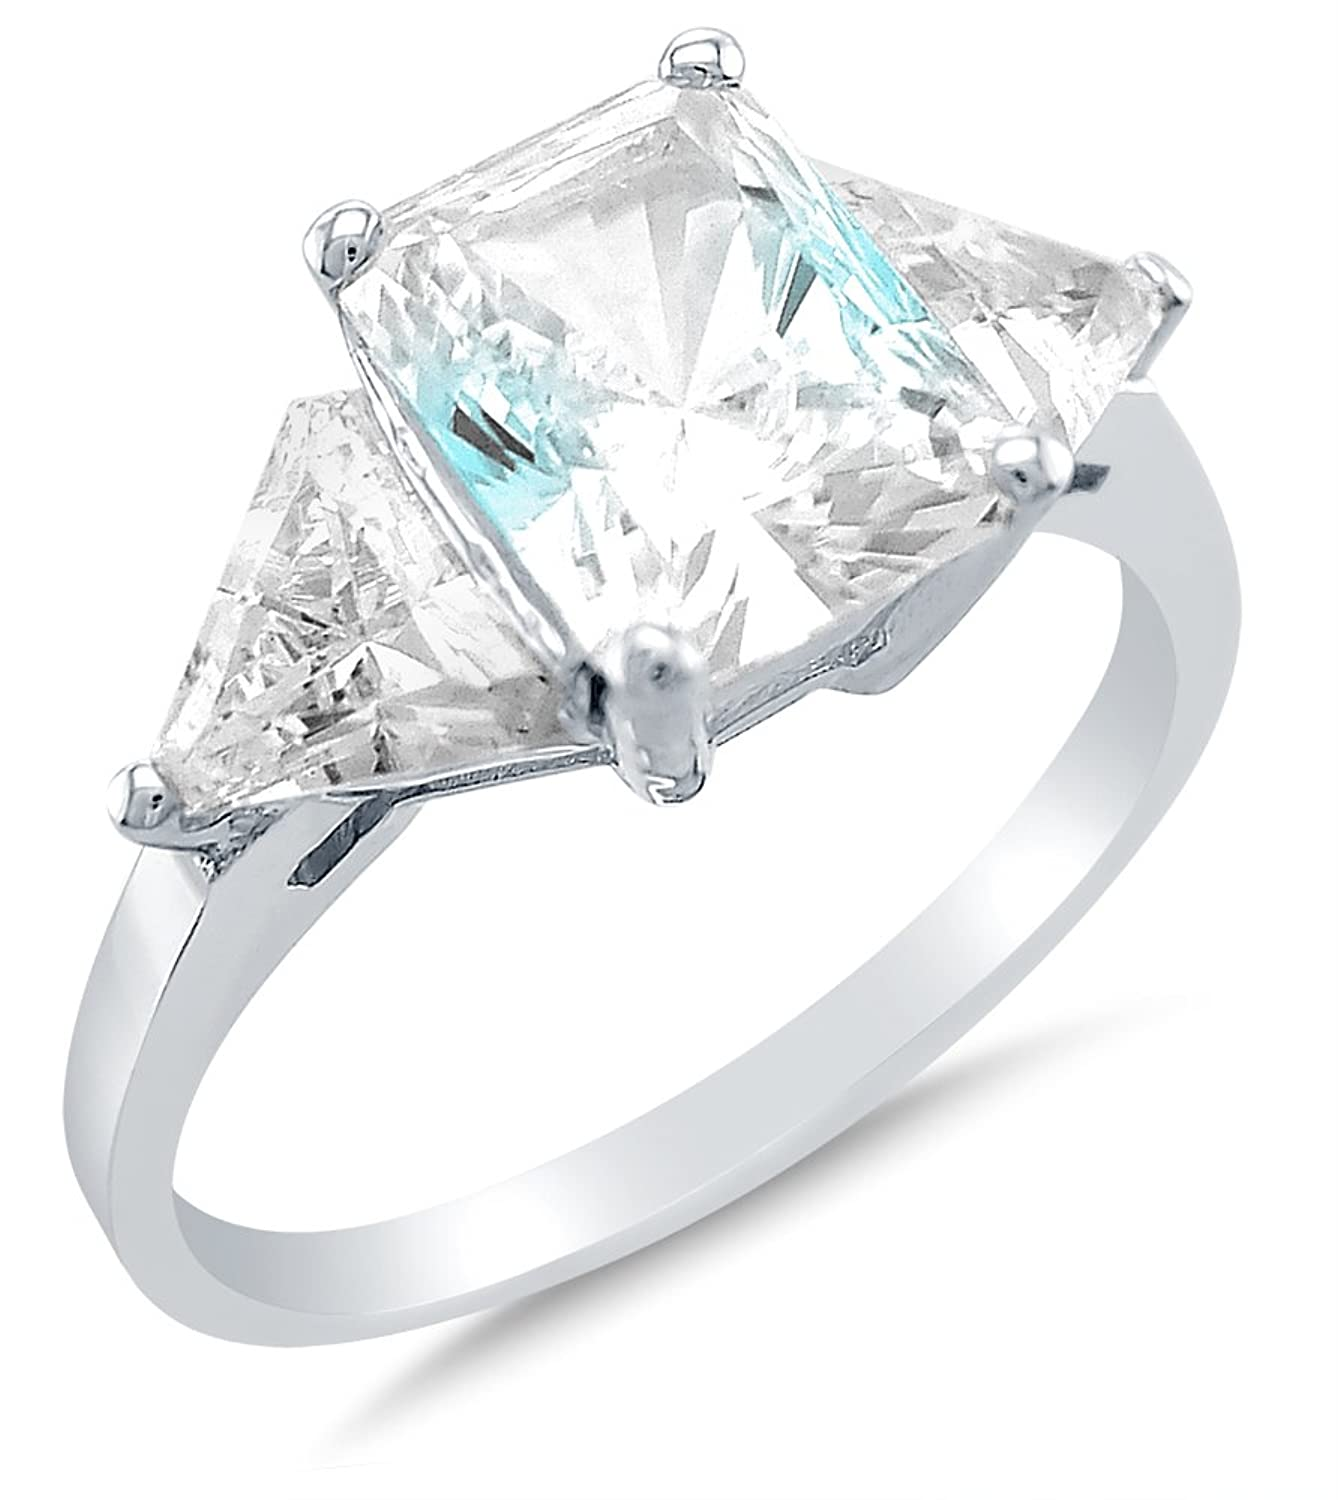 engagement white a specials rings in aquamarine weight total trillion cut gold diamond ct gem ring